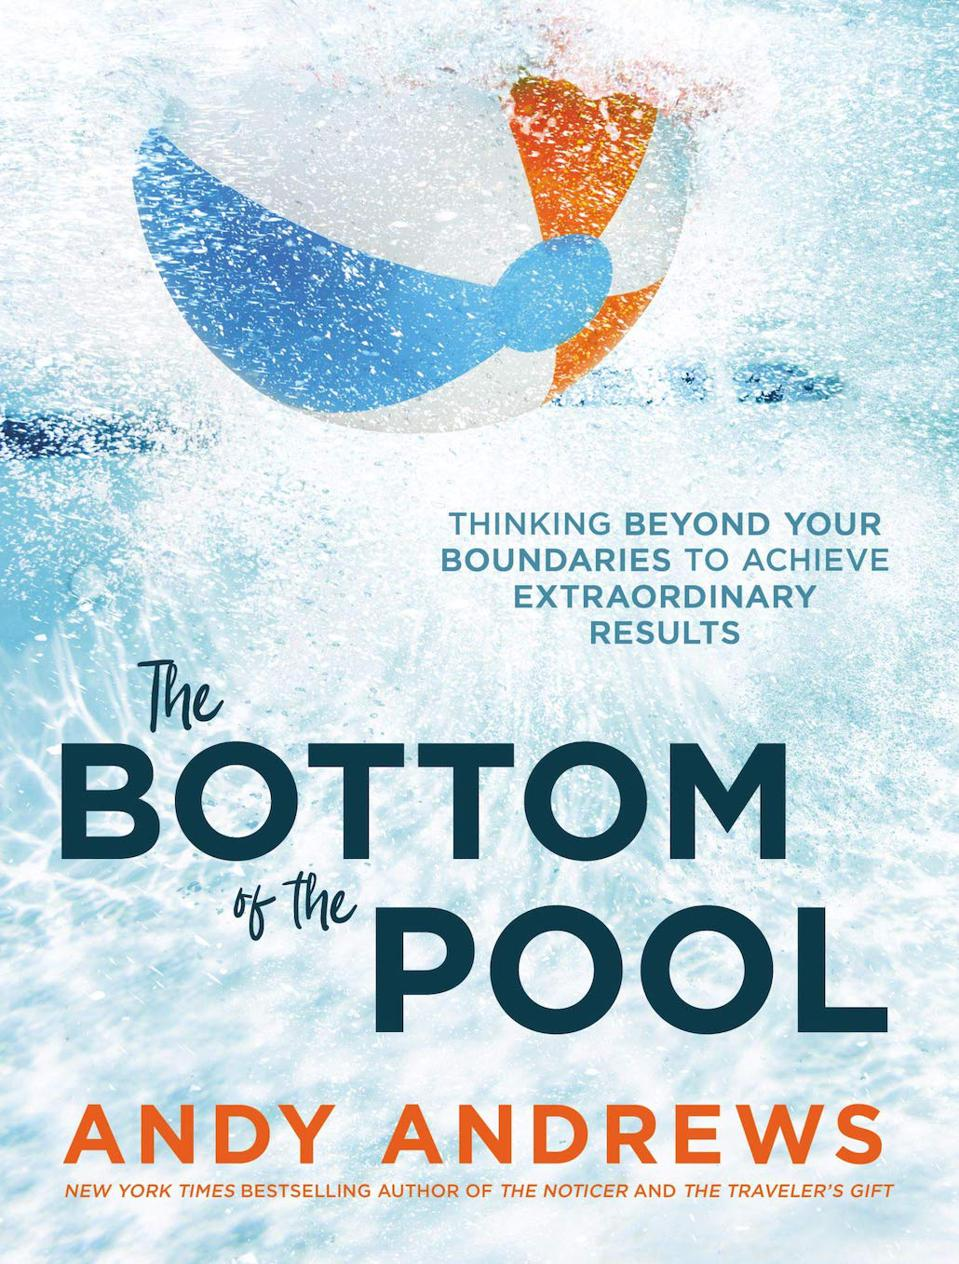 The Bottom of the Pool: Thinking Beyond Your Boundaries to Achieve Extraordinary Results by Andy Andrews